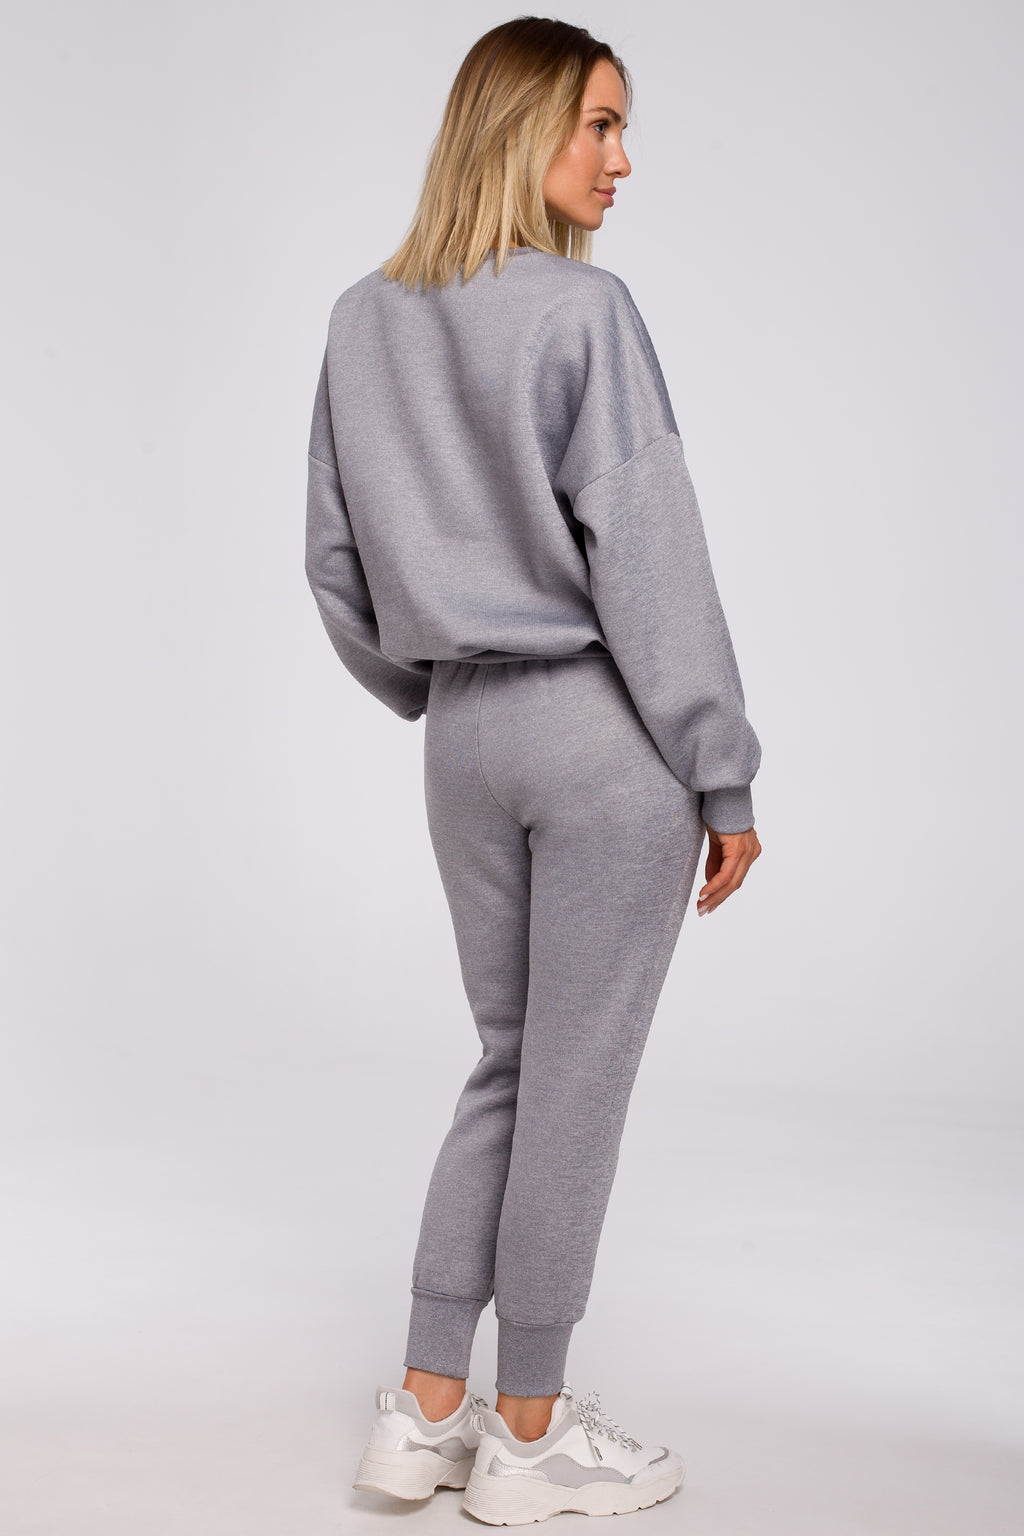 Grey Joggers With Elastic Waist - So Chic Boutique